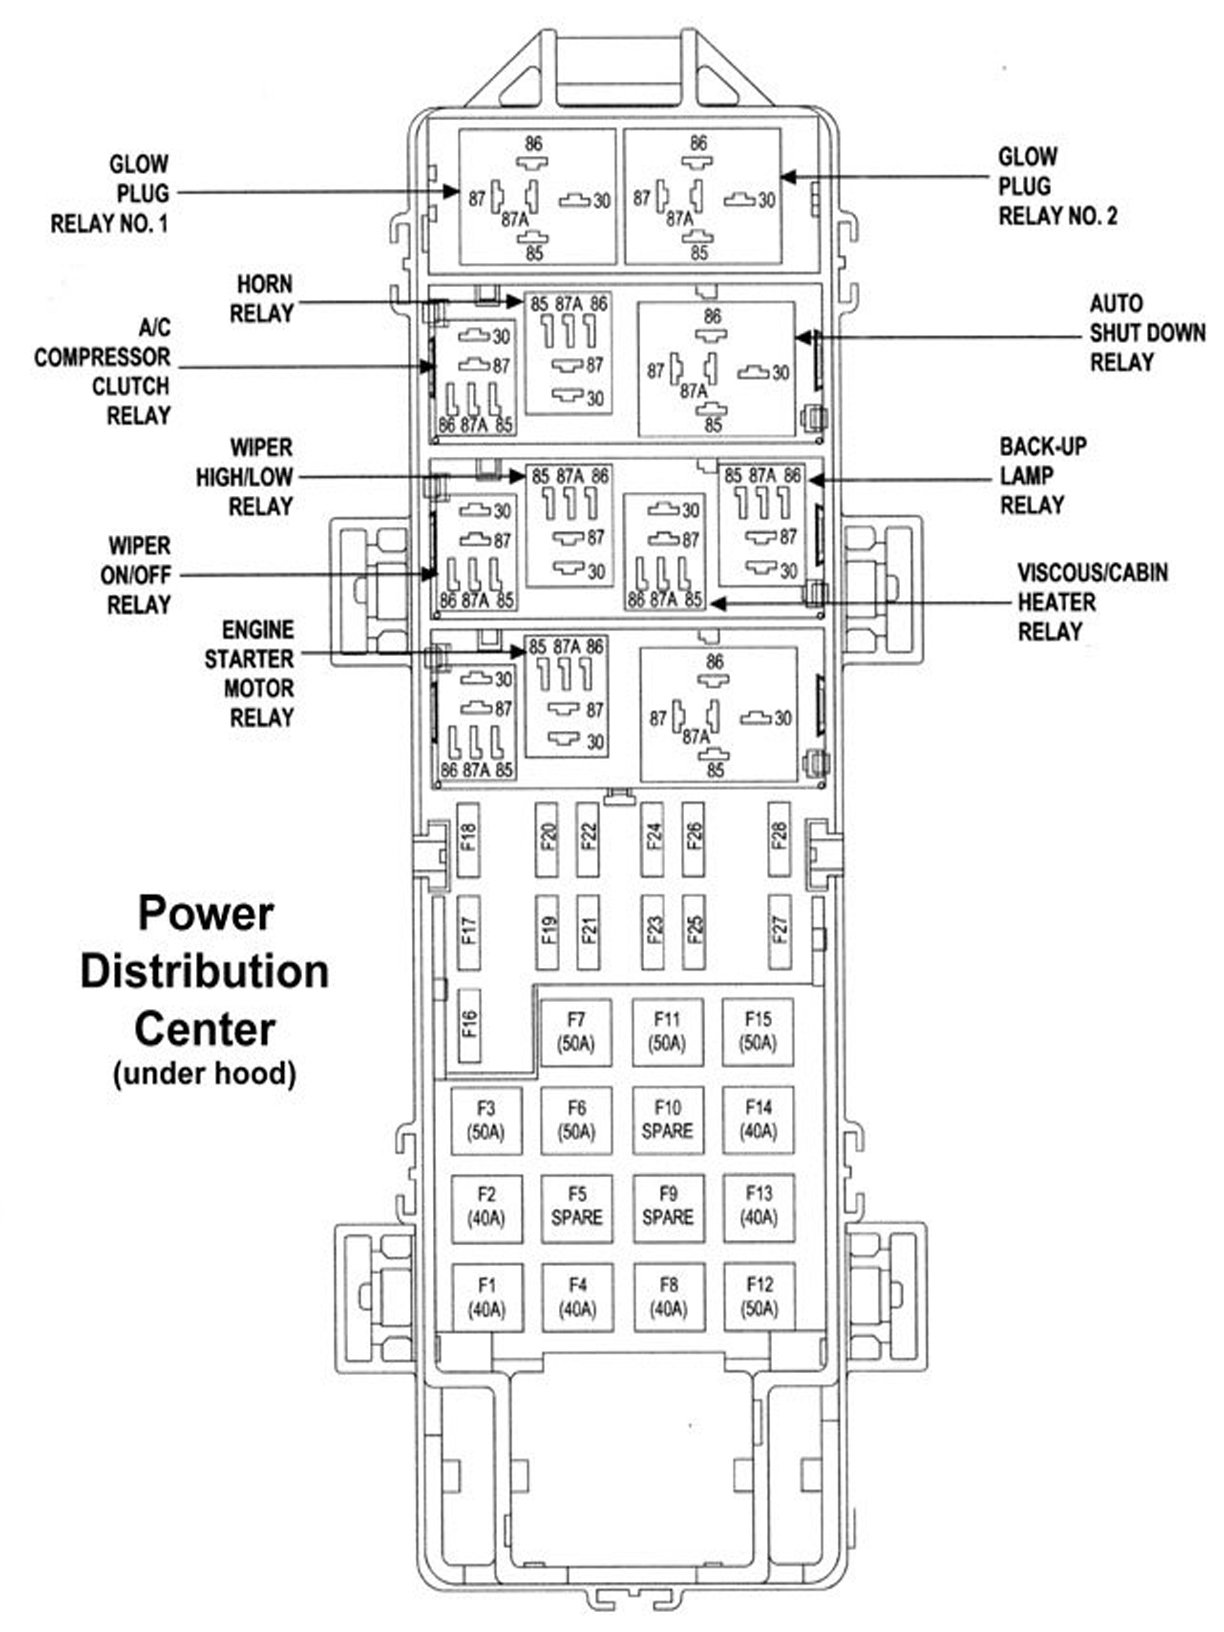 AAAAAAAAug 28 Fuse Box 04 91415 jeep grand cherokee wj 1999 to 2004 fuse box diagram cherokeeforum 1999 jeep xj fuse box diagram at panicattacktreatment.co